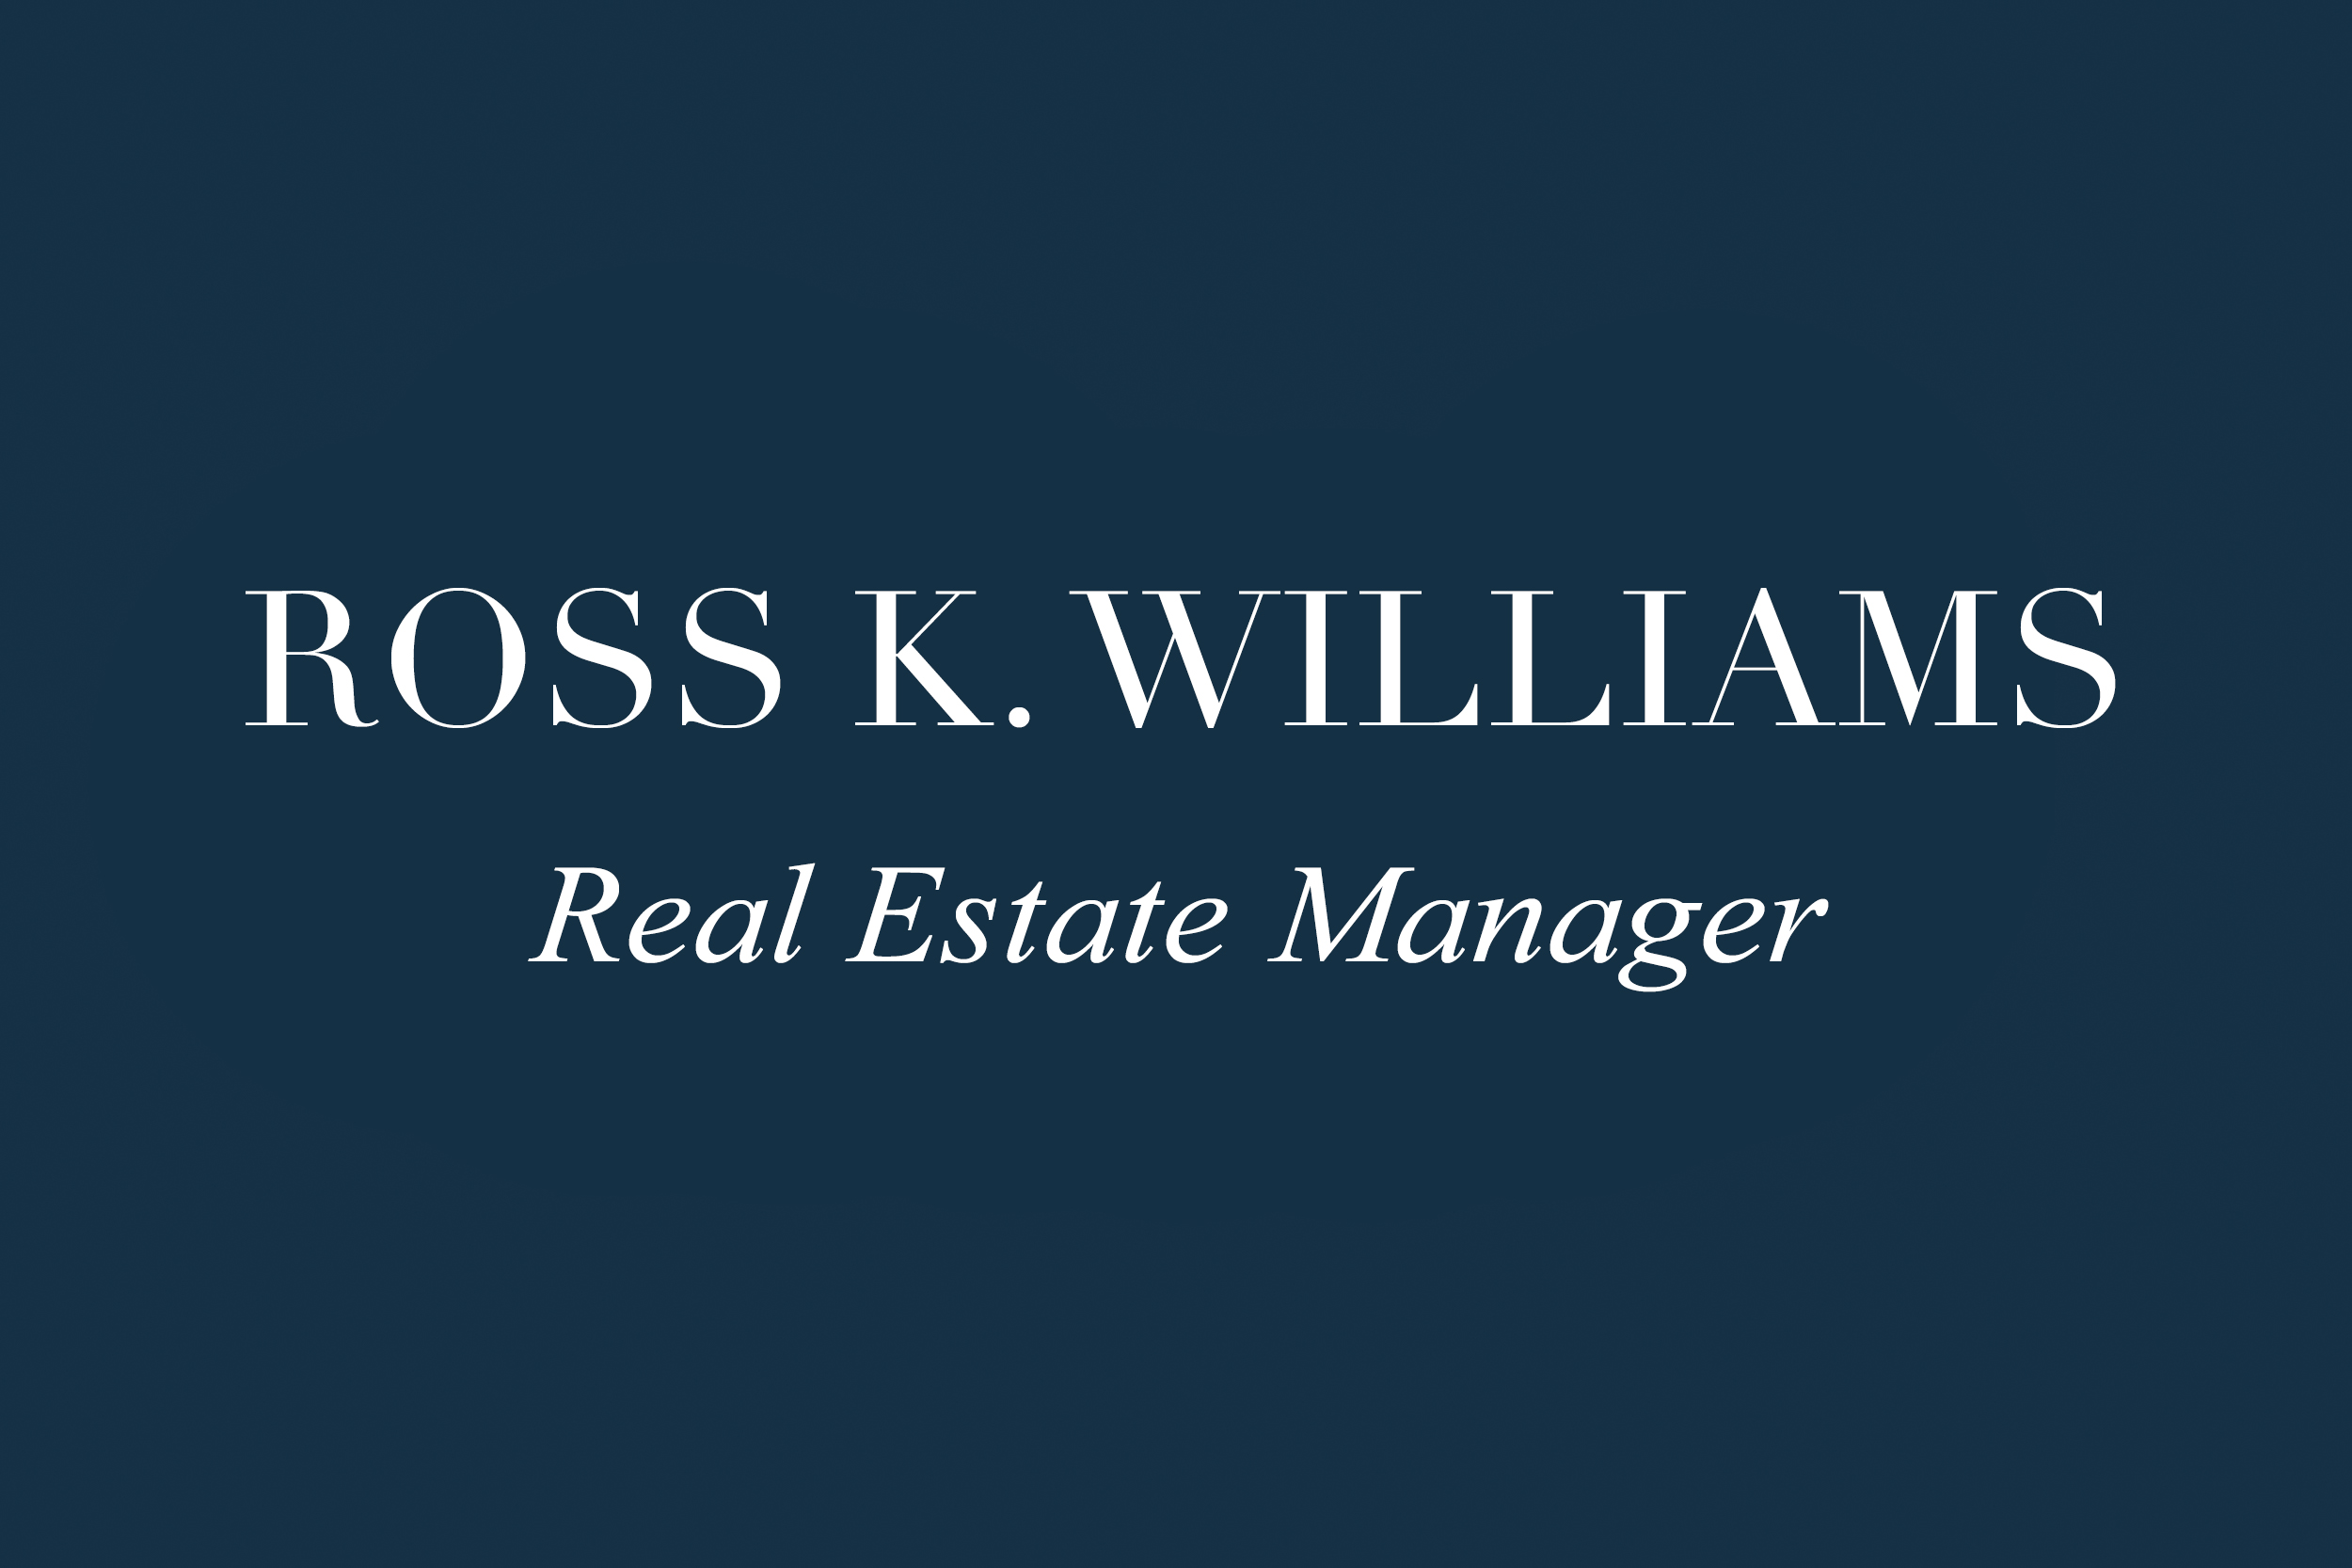 ROSS K. WILLIAMS | Real Estate Manager